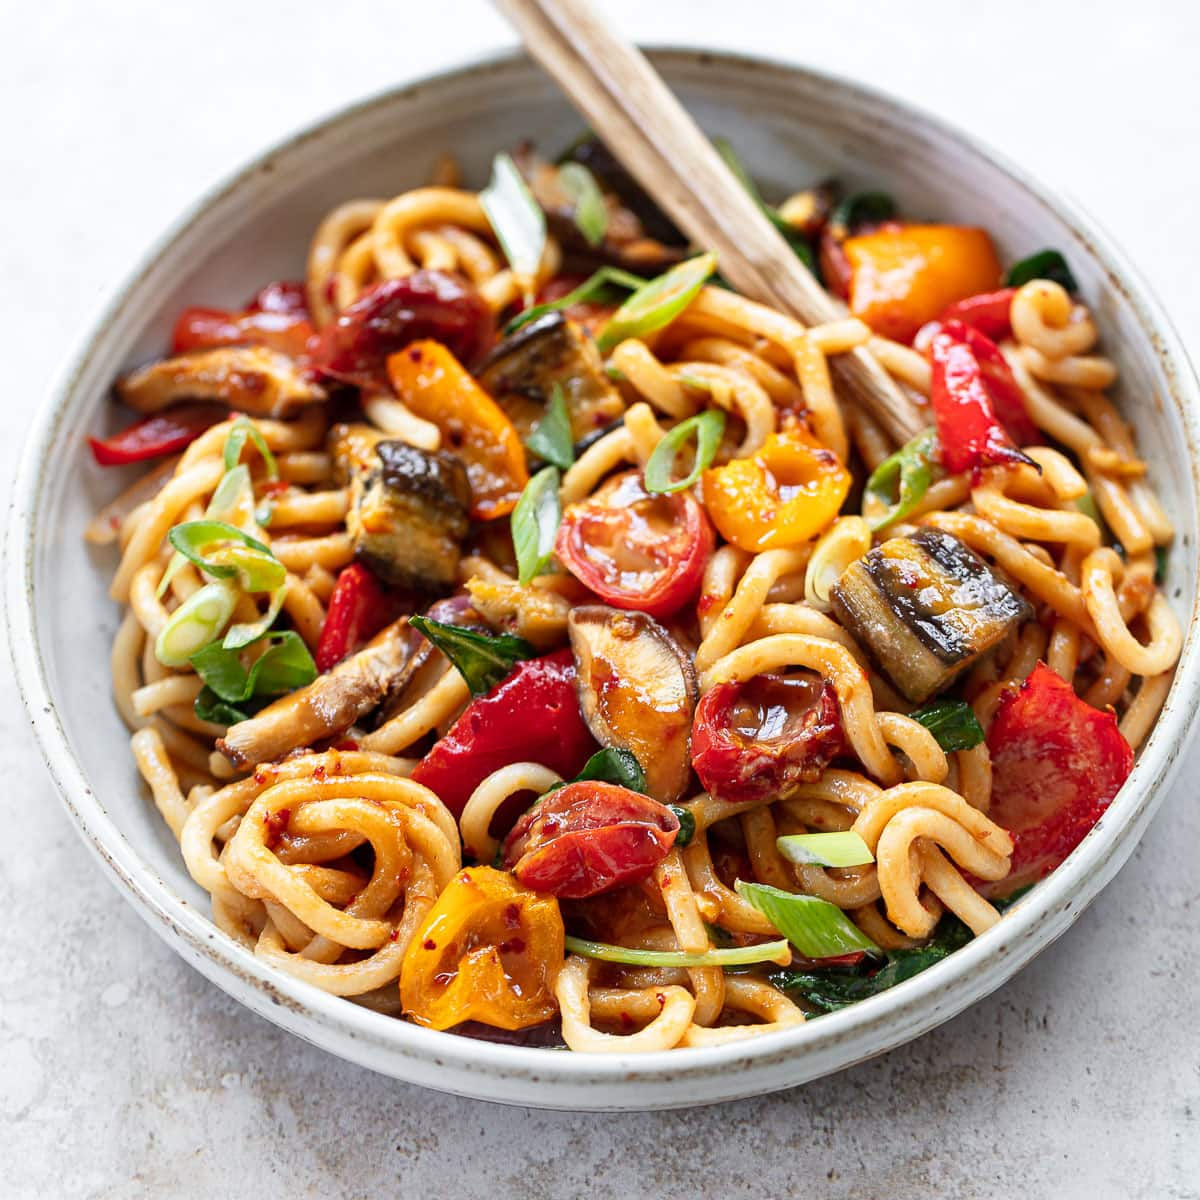 Image of a shallow gray bowl full of udon noodles and roasted vegetables with a pair of chopsticks on the side.